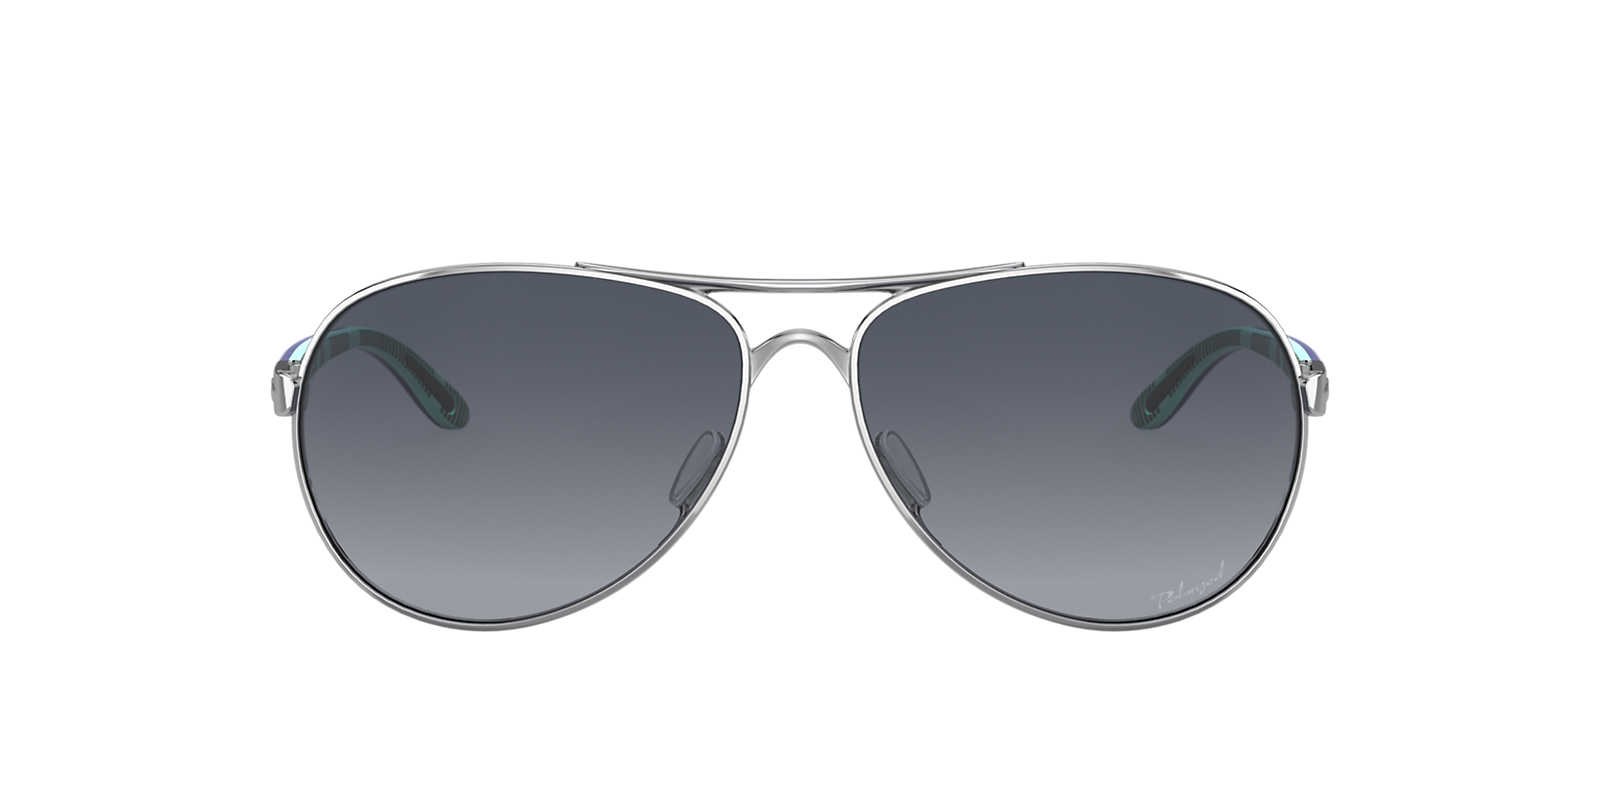 yqacs Oakley Sunglasses for Women | Sunglass Hut